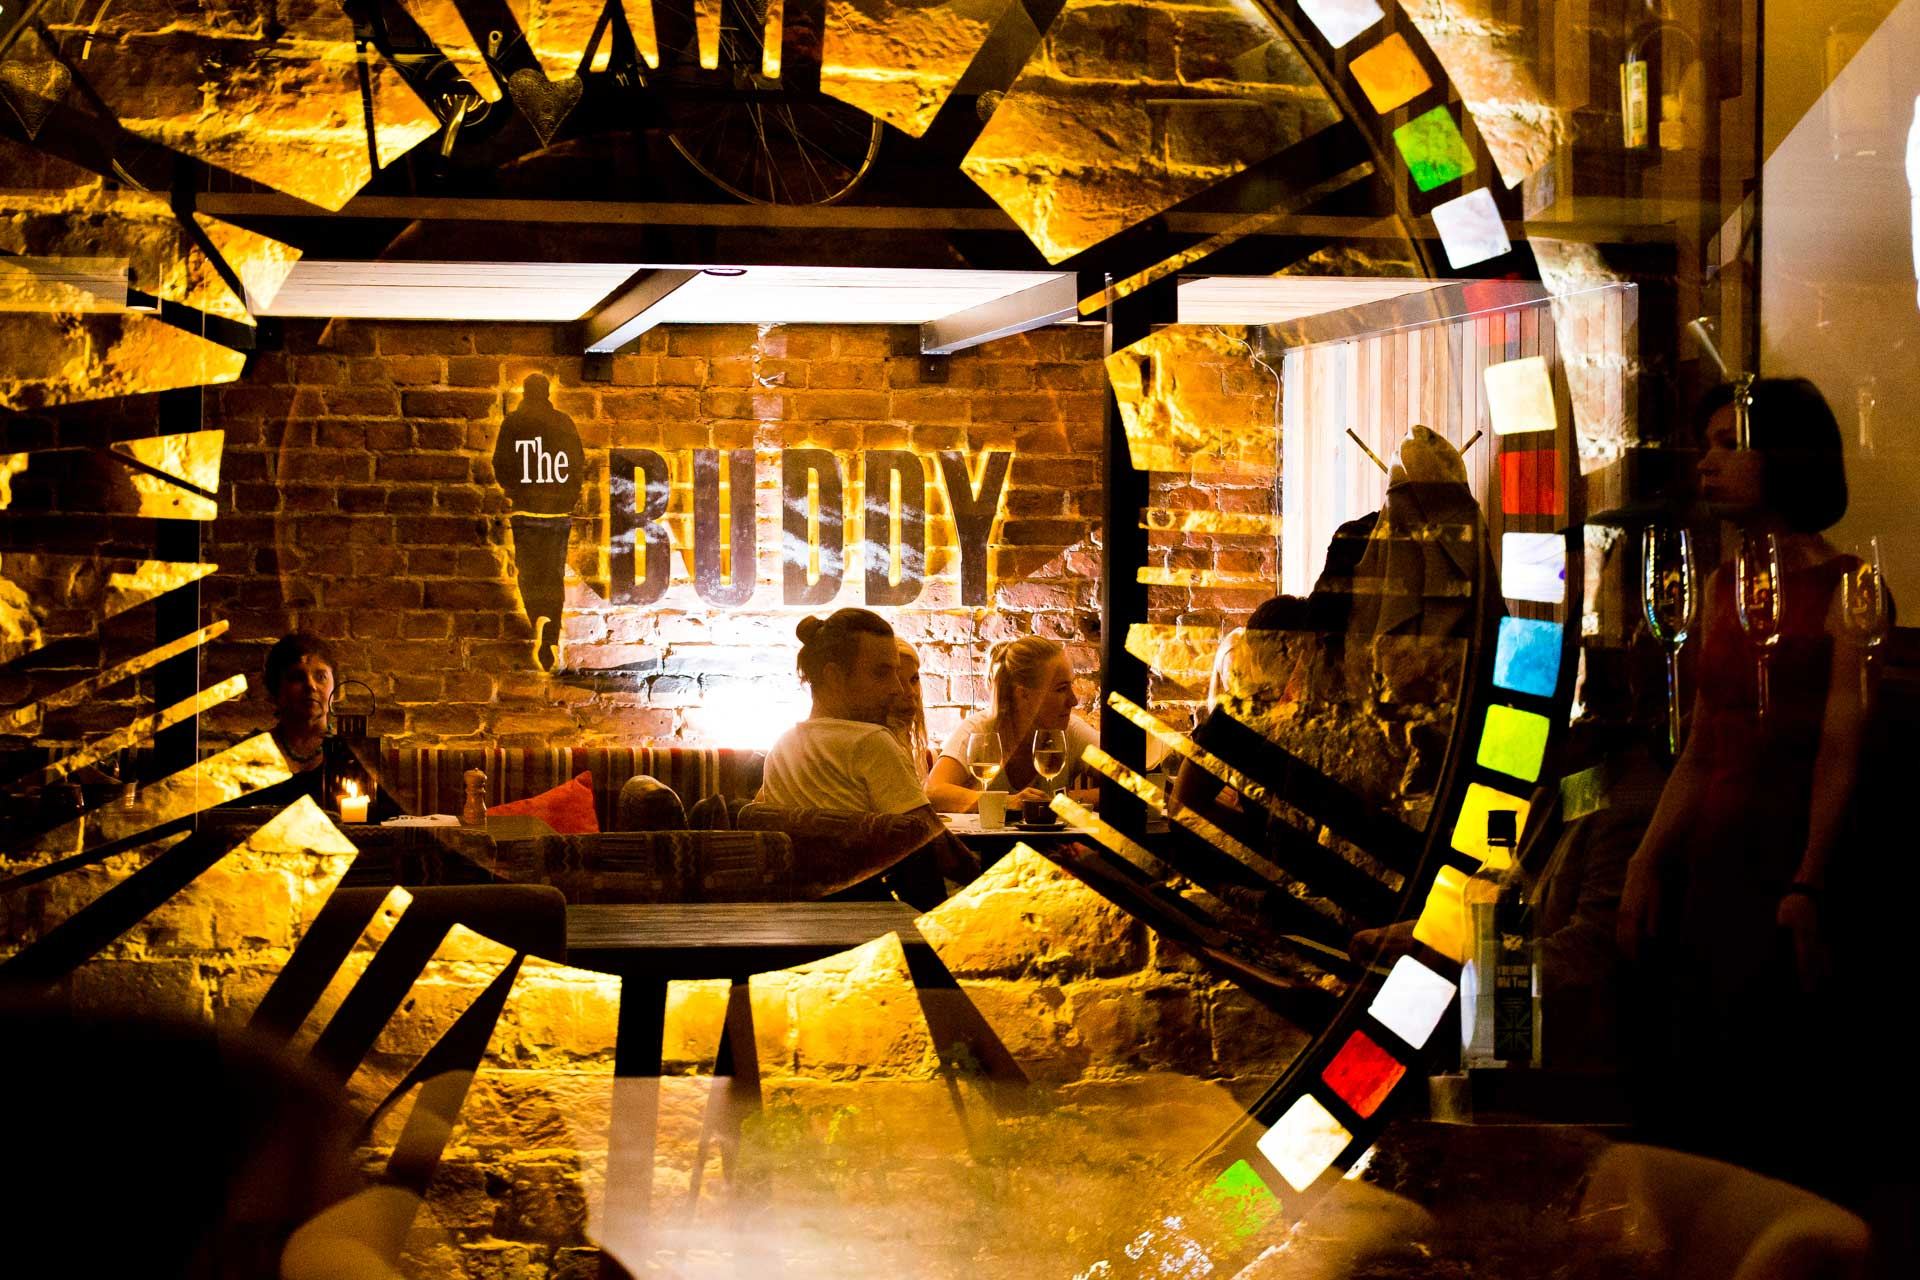 The Buddy Cafe